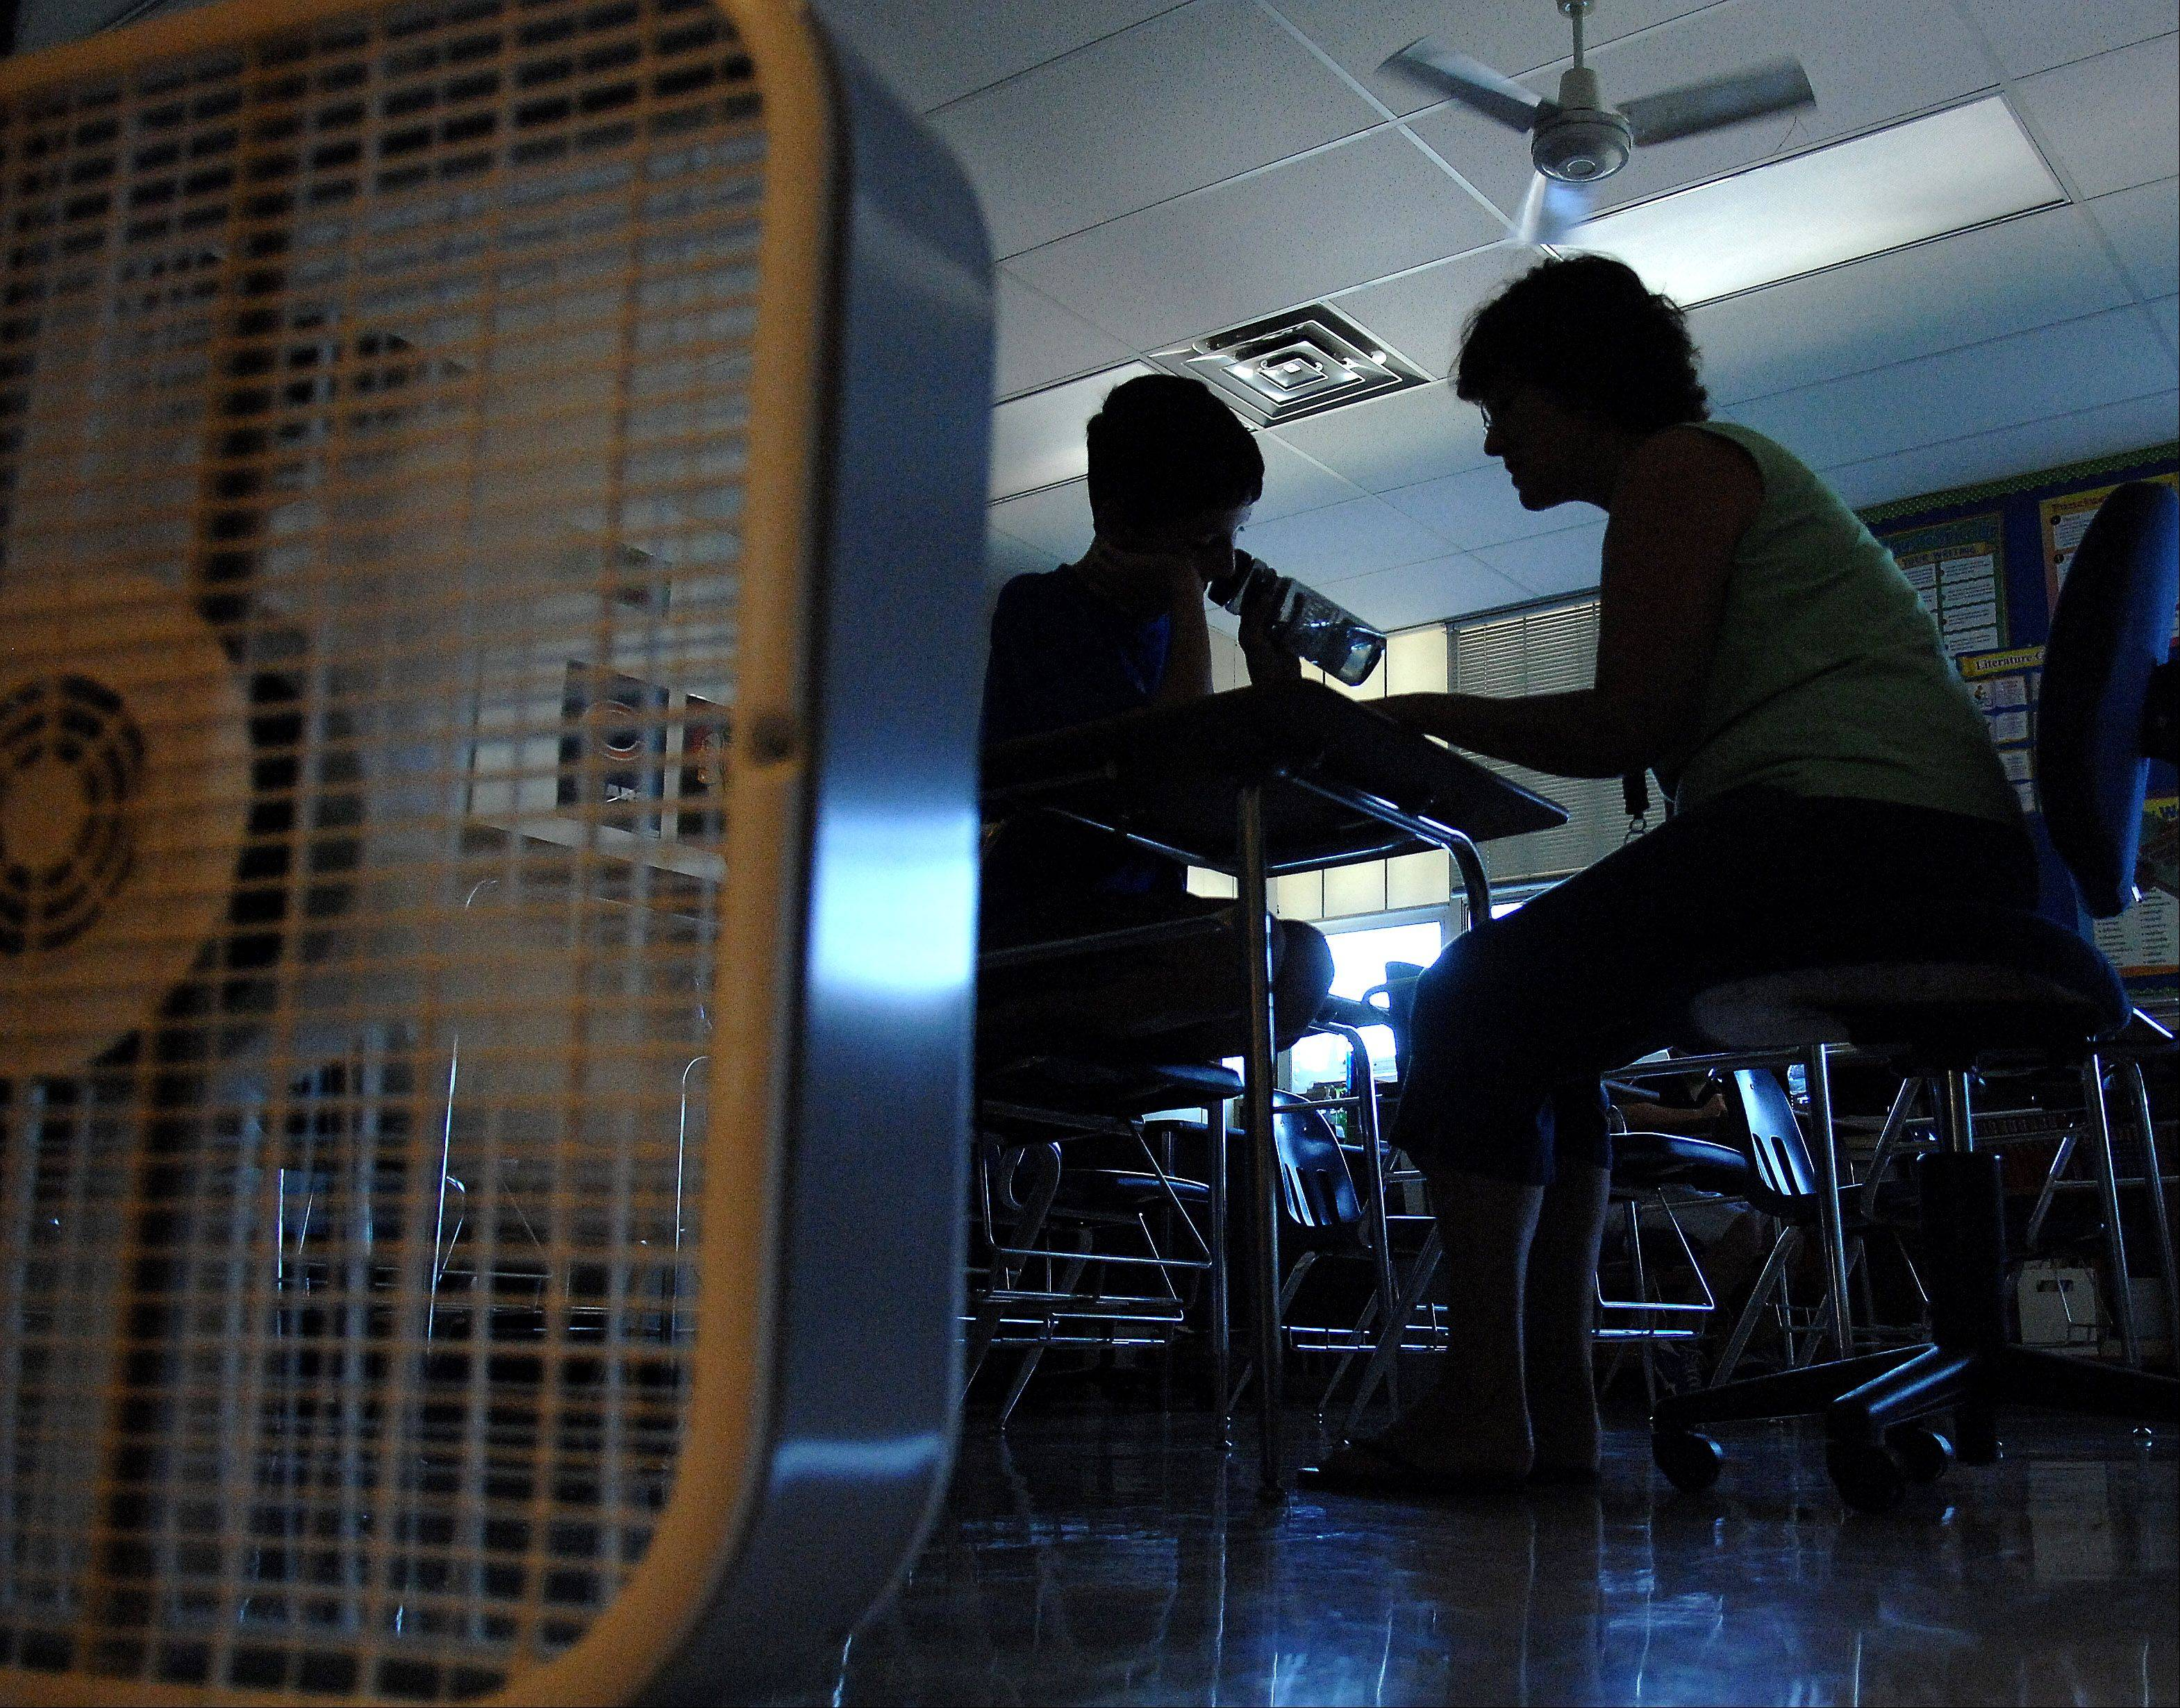 Fans, water and lights off were among the ways that Thompson Middle School teachers and students tried to keep cool without air conditioning and temperatures expected to hit the mid-90s Tuesday in St. Charles.